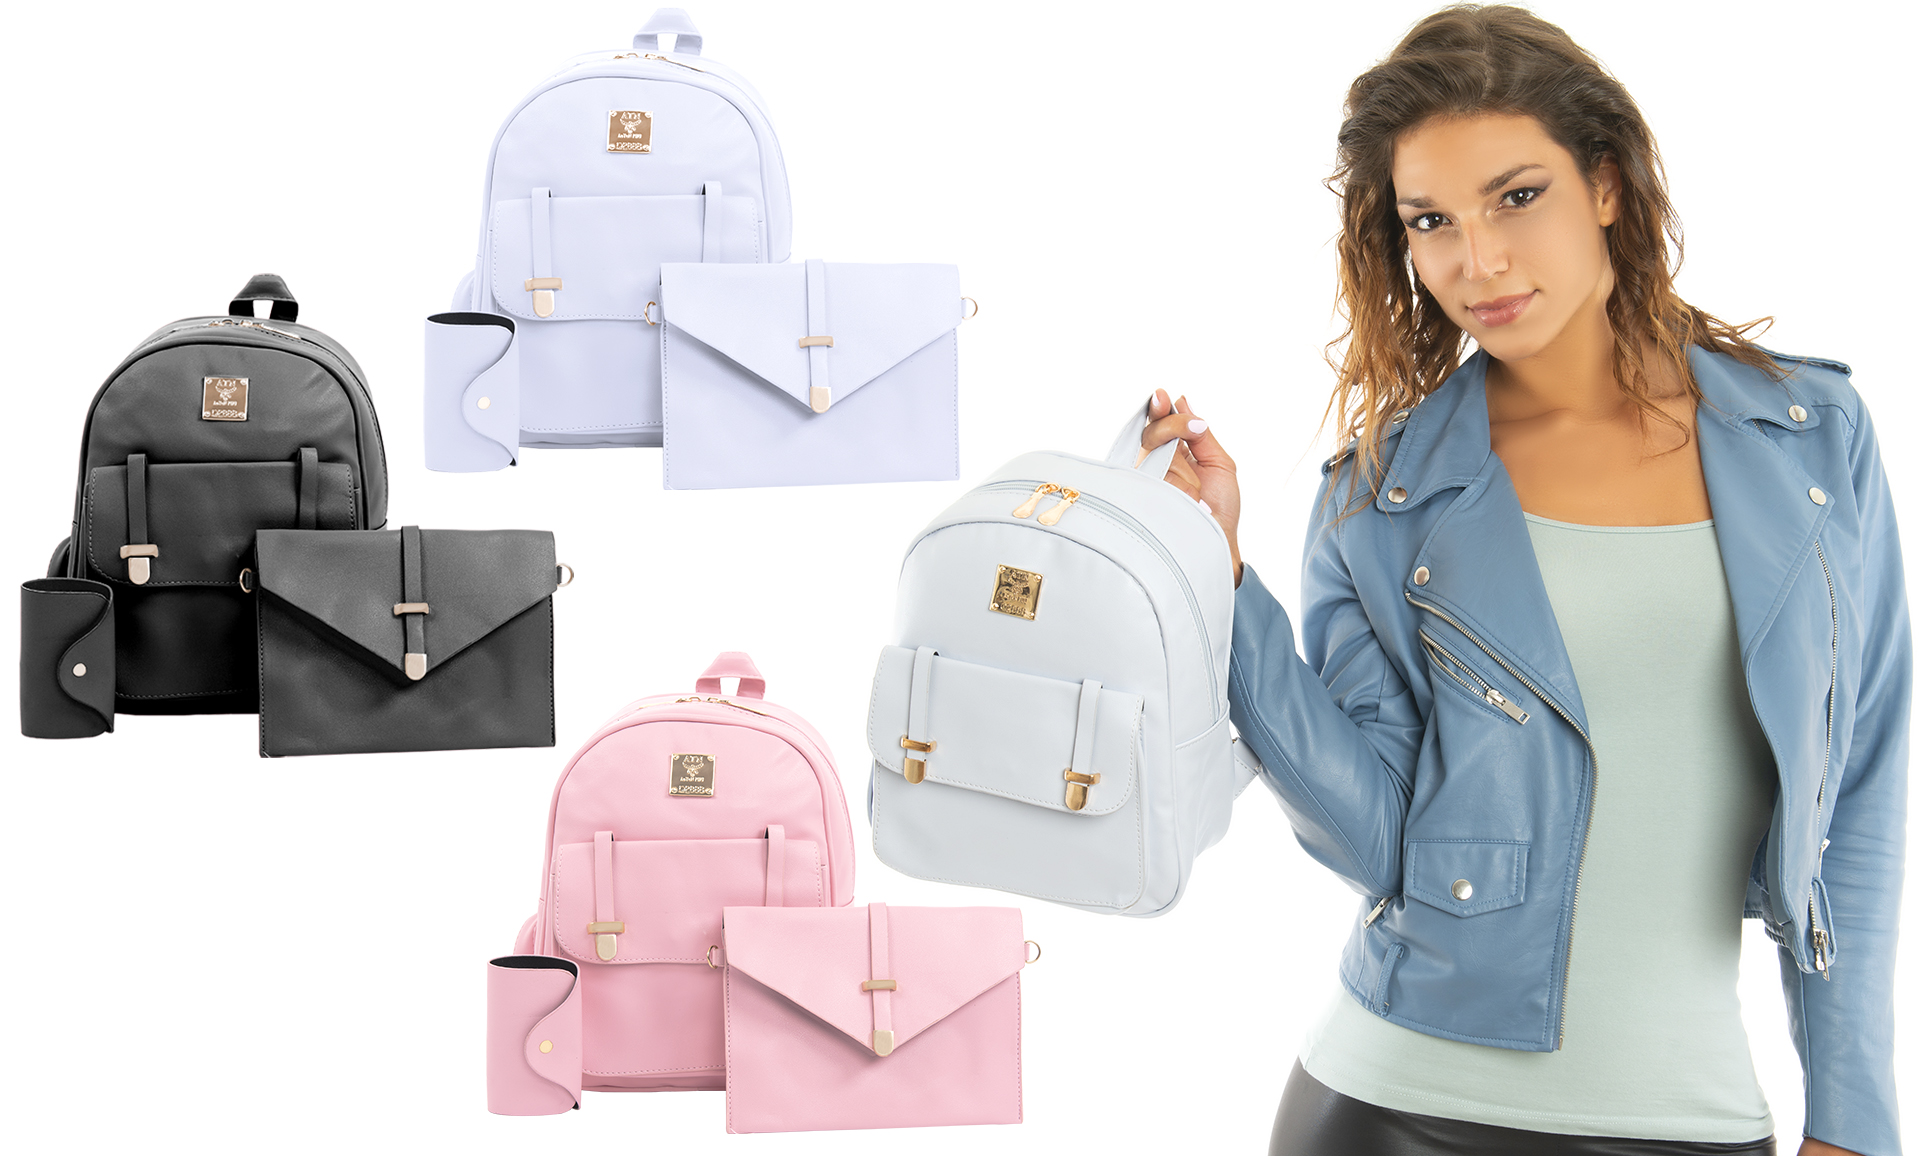 c1df0c64607f 3 Pcs Womens PU Leather Backpack Ladies Travel Handbag Purse Set in 3  Colours